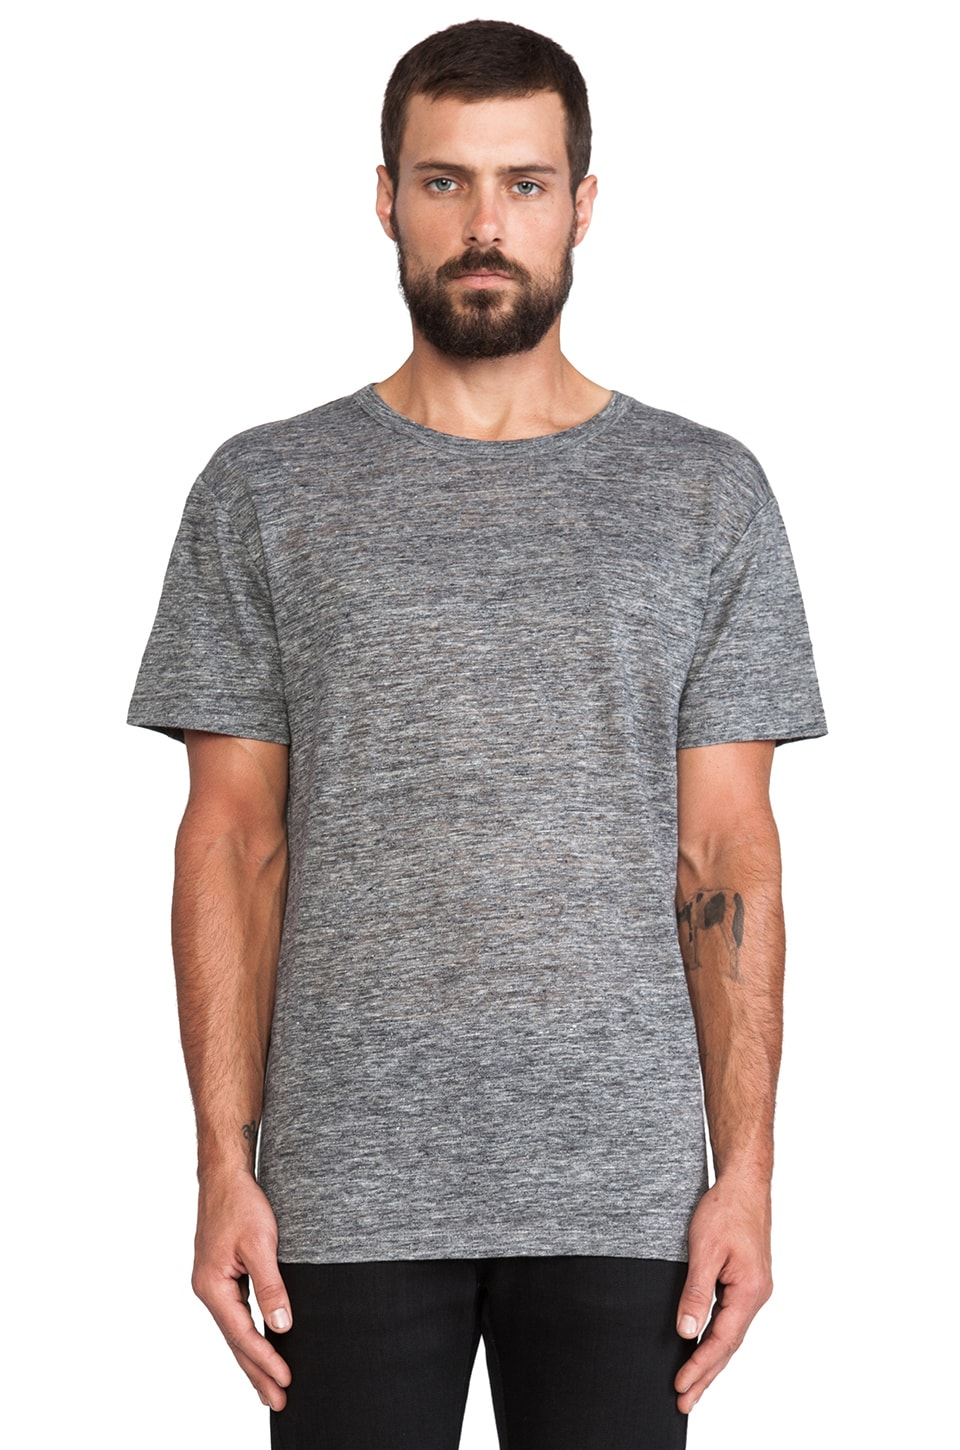 T by Alexander Wang Linen Jersey Crewneck Tee in Heather Grey